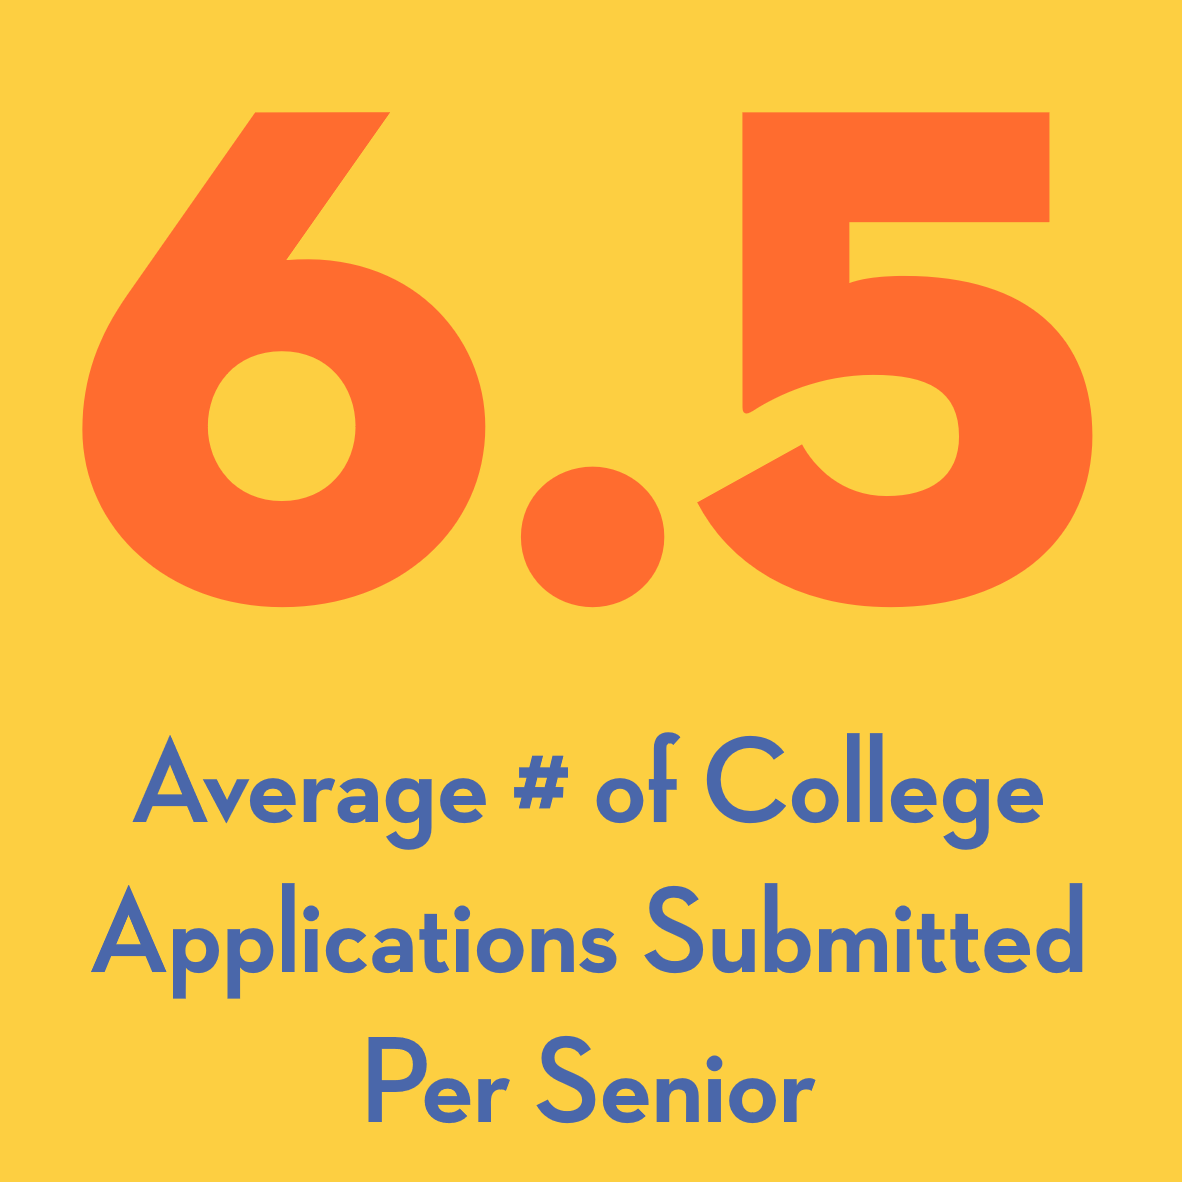 6.5 college applications submitted per senior on average